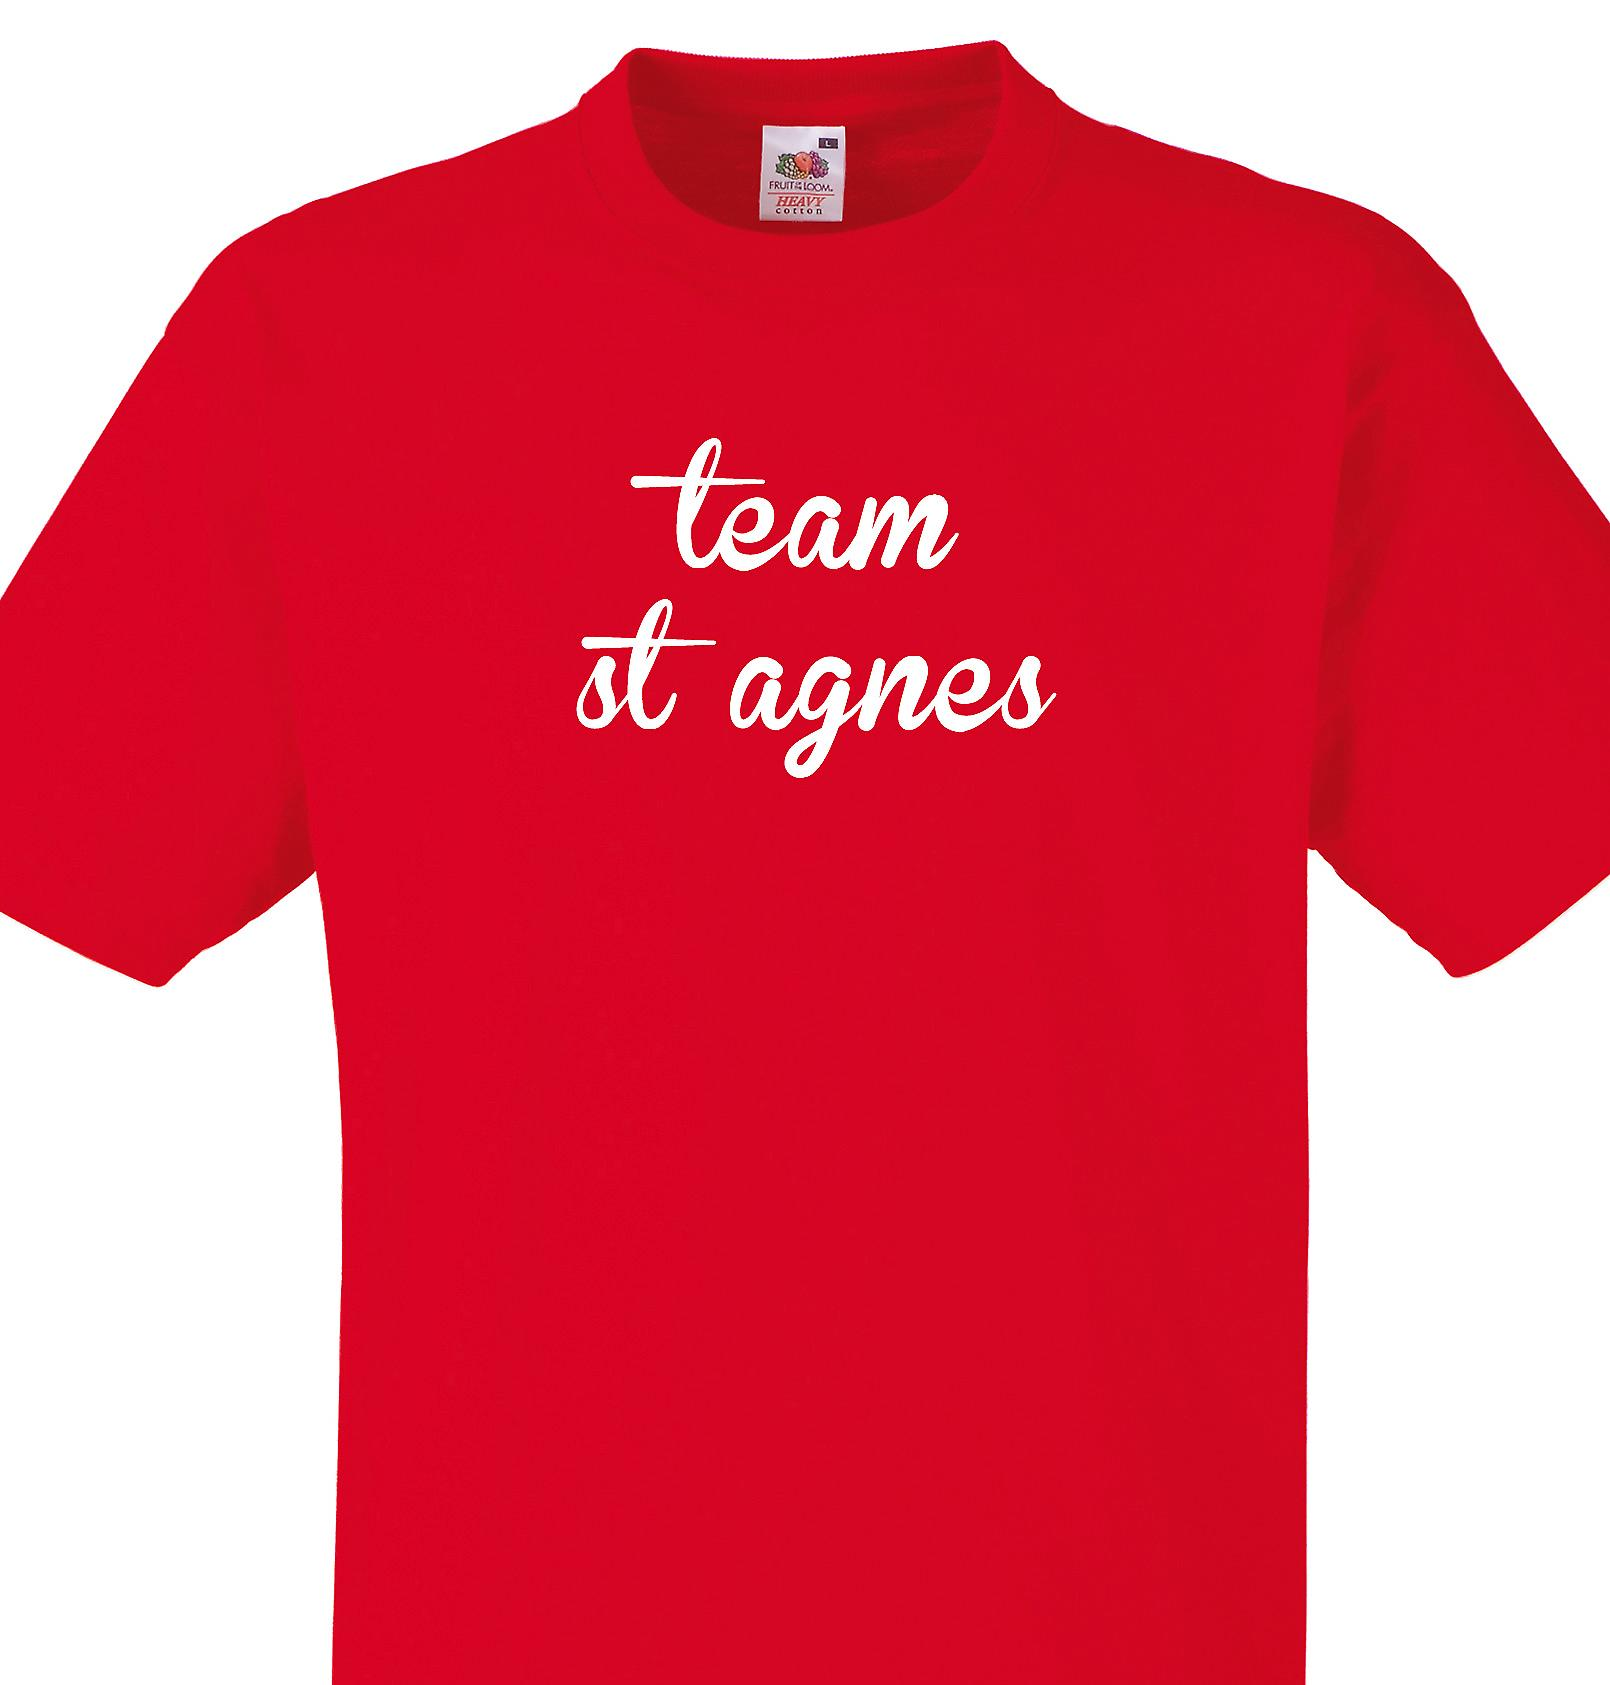 Team St agnes Red T shirt